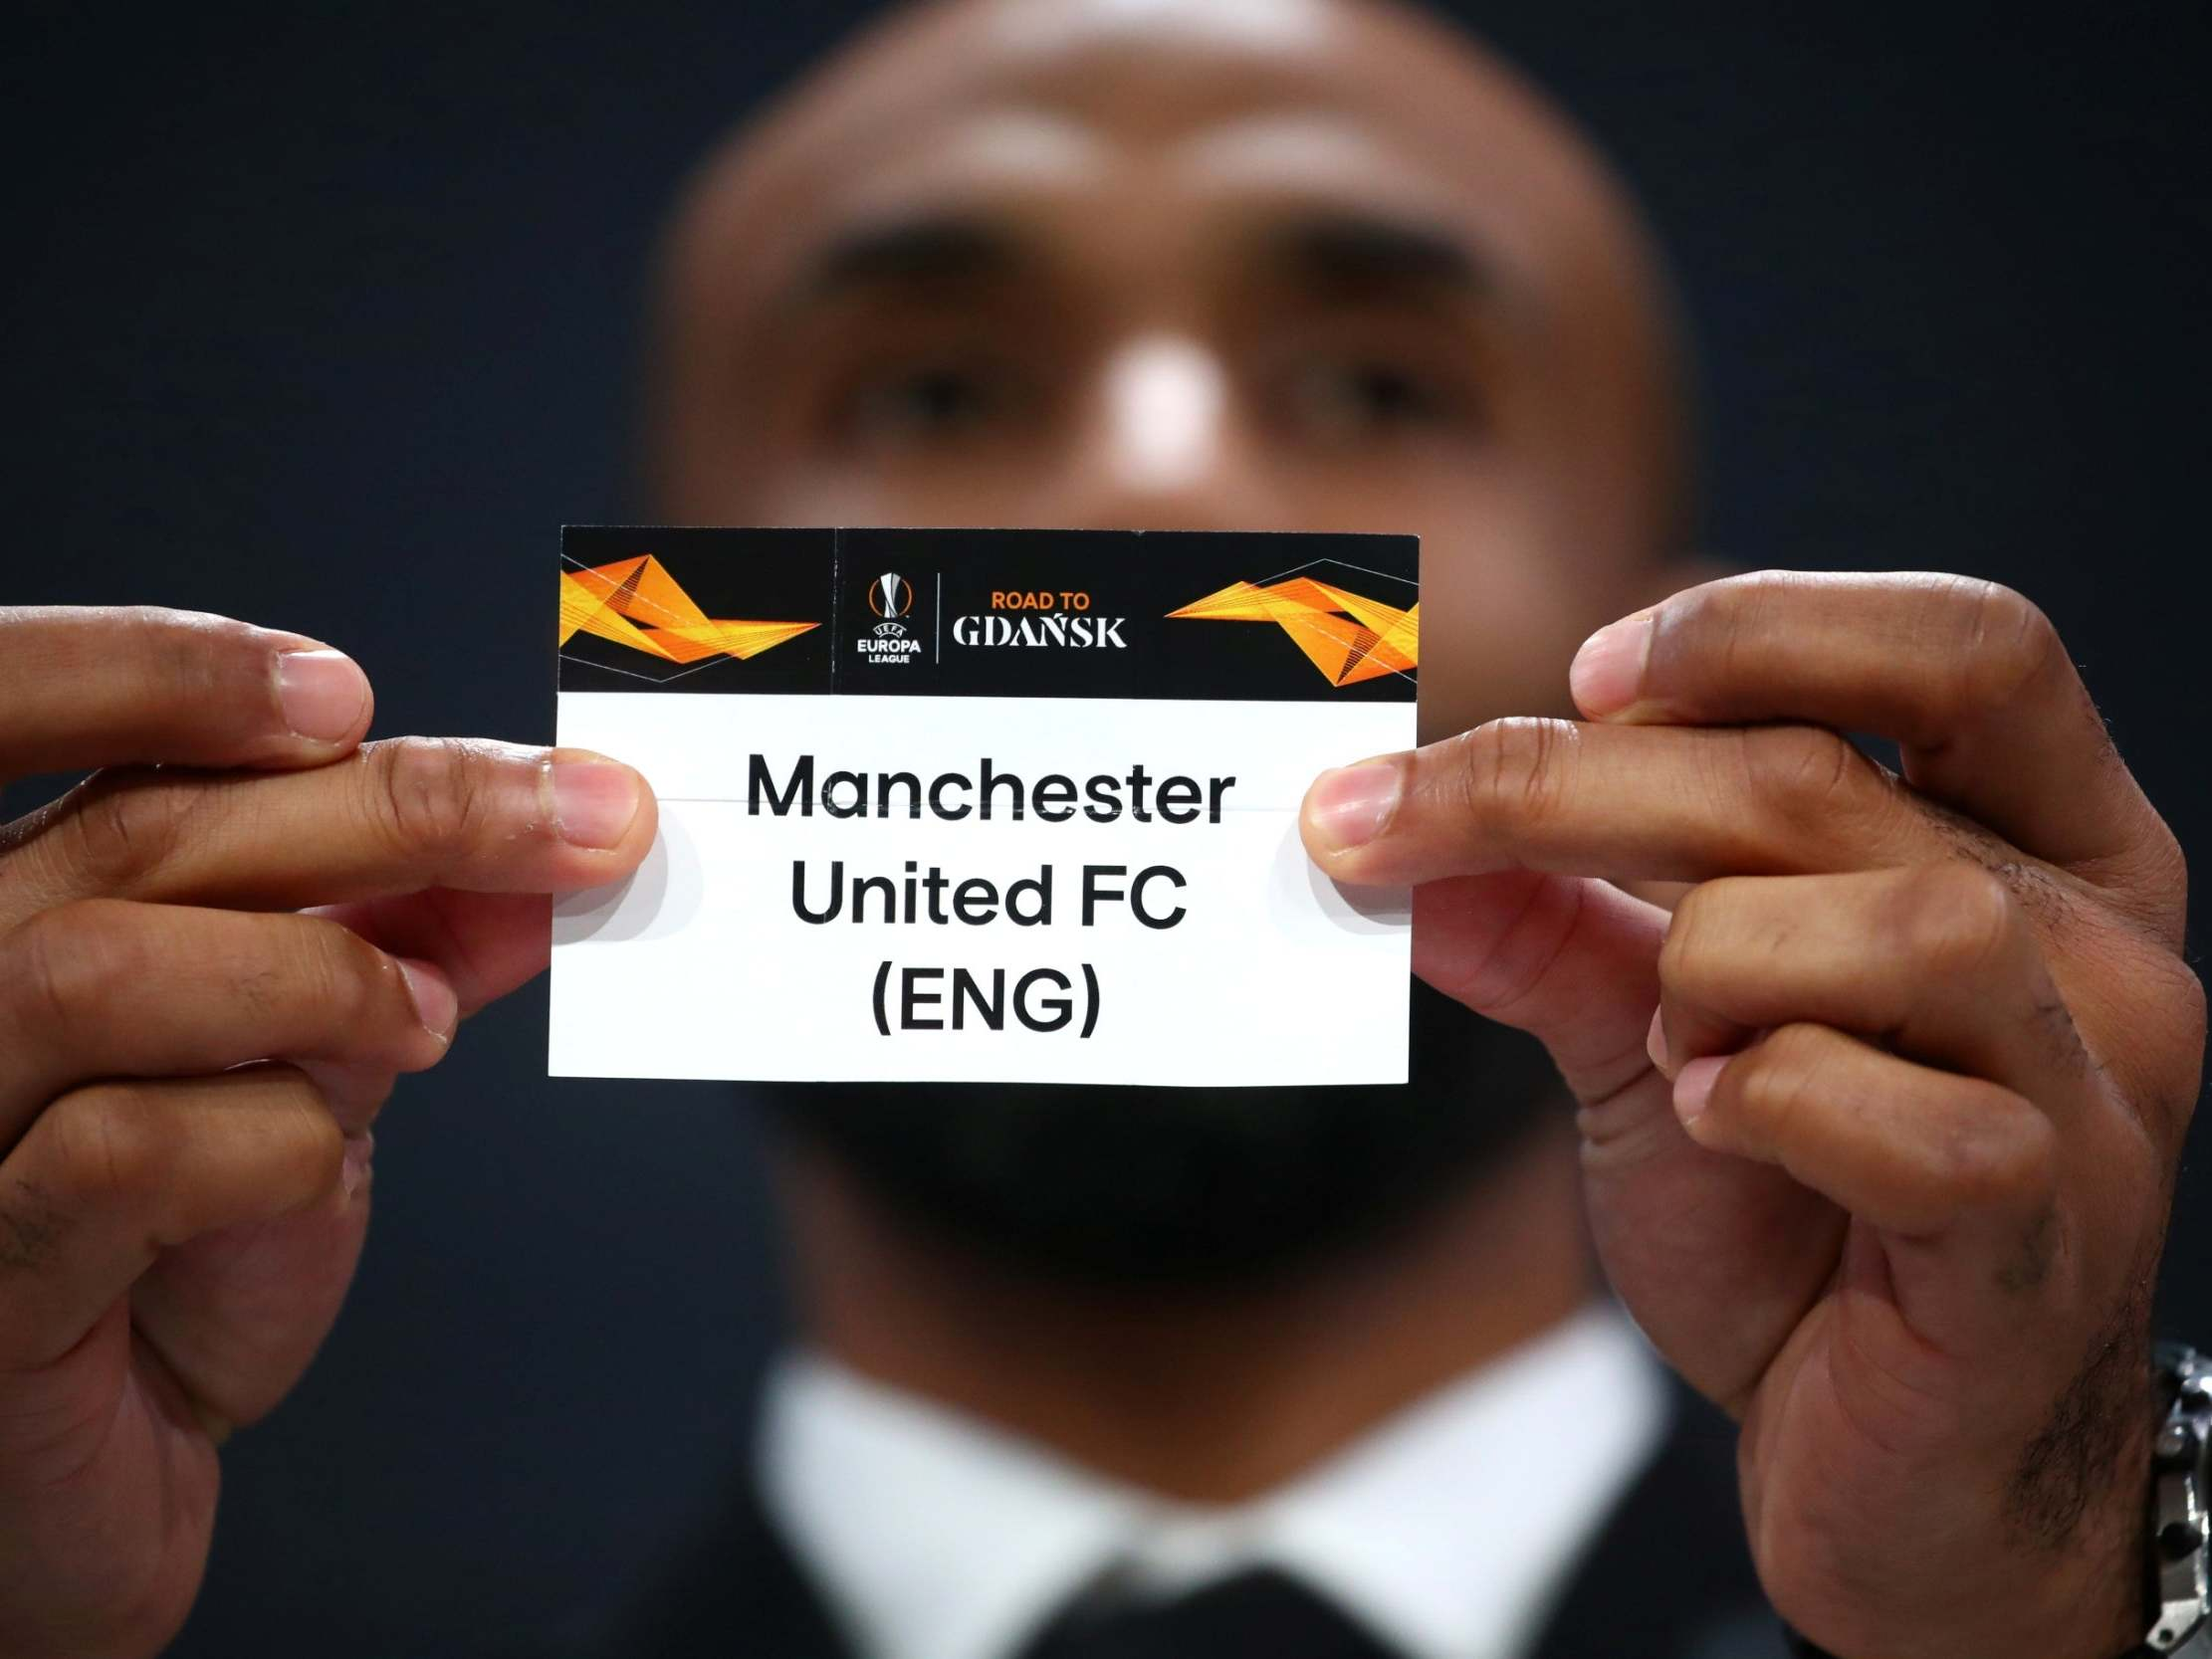 Manchester United Europa League draw 2019: Ole Gunnar Solskjaer's side to play Club Brugge